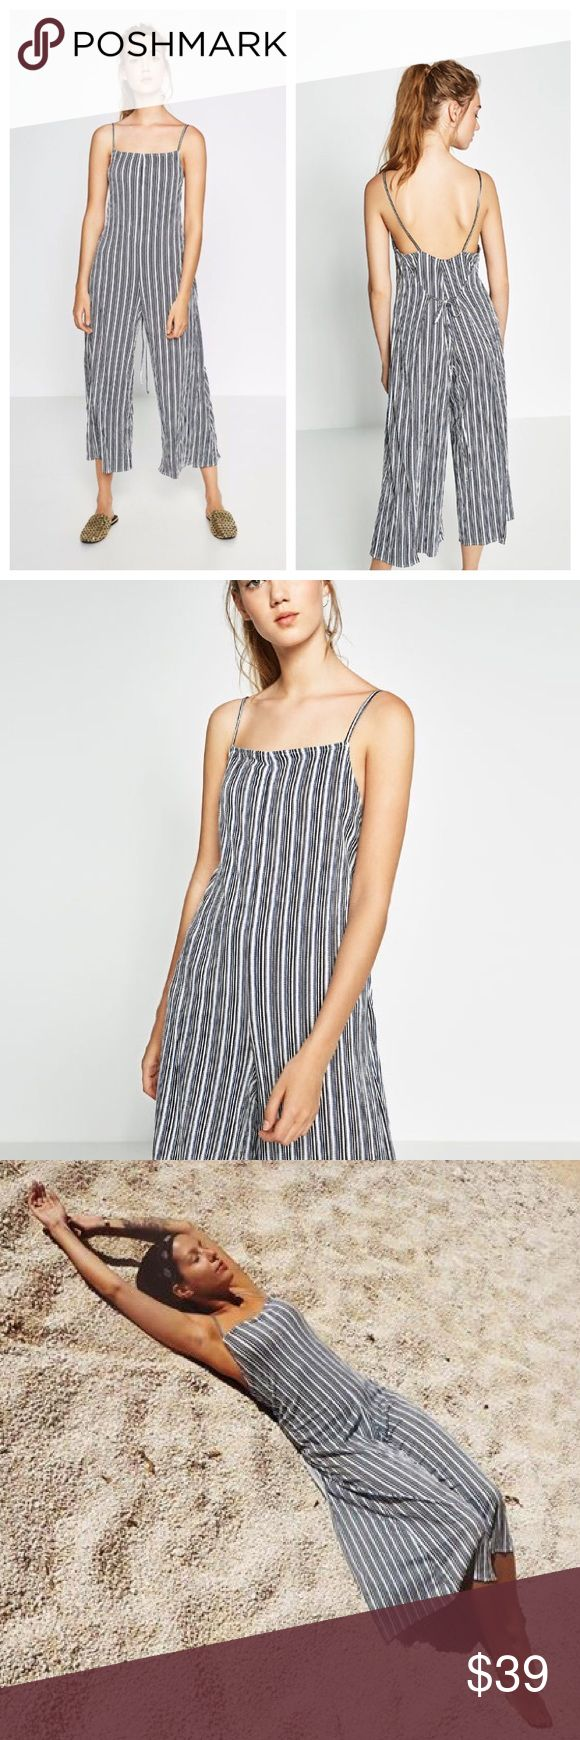 Smashing 🔥 ZARA Cropped Striped Jumpsuit Romper L So cute and versatile...and flattering and comfortable!! Can dress it up with high heeled sandals or wear to the beach with flip-flops. 96% viscose, 3% polyester, 1% elastane. Zara Pants Jumpsuits & Rompers